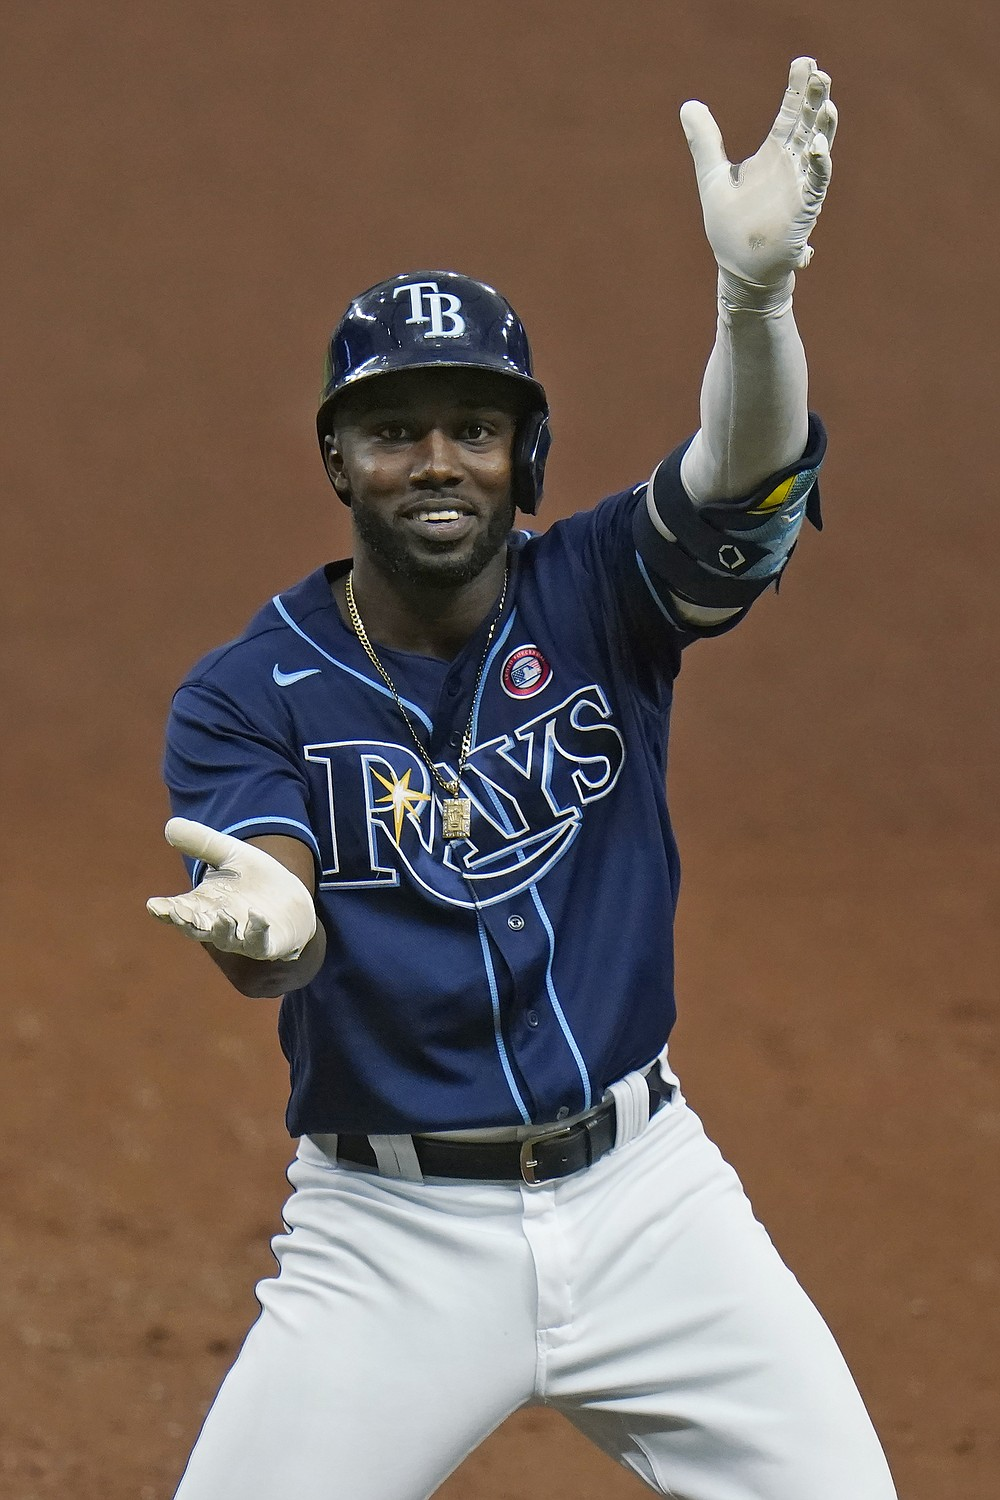 Tampa Bay Rays' Randy Arozarena celebrates after his RBI single off New York Mets relief pitcher Sean Reid-Foley scored Austin Meadows during the fourth inning of a baseball game Saturday, May 15, 2021, in St. Petersburg, Fla. (AP Photo/Chris O'Meara)